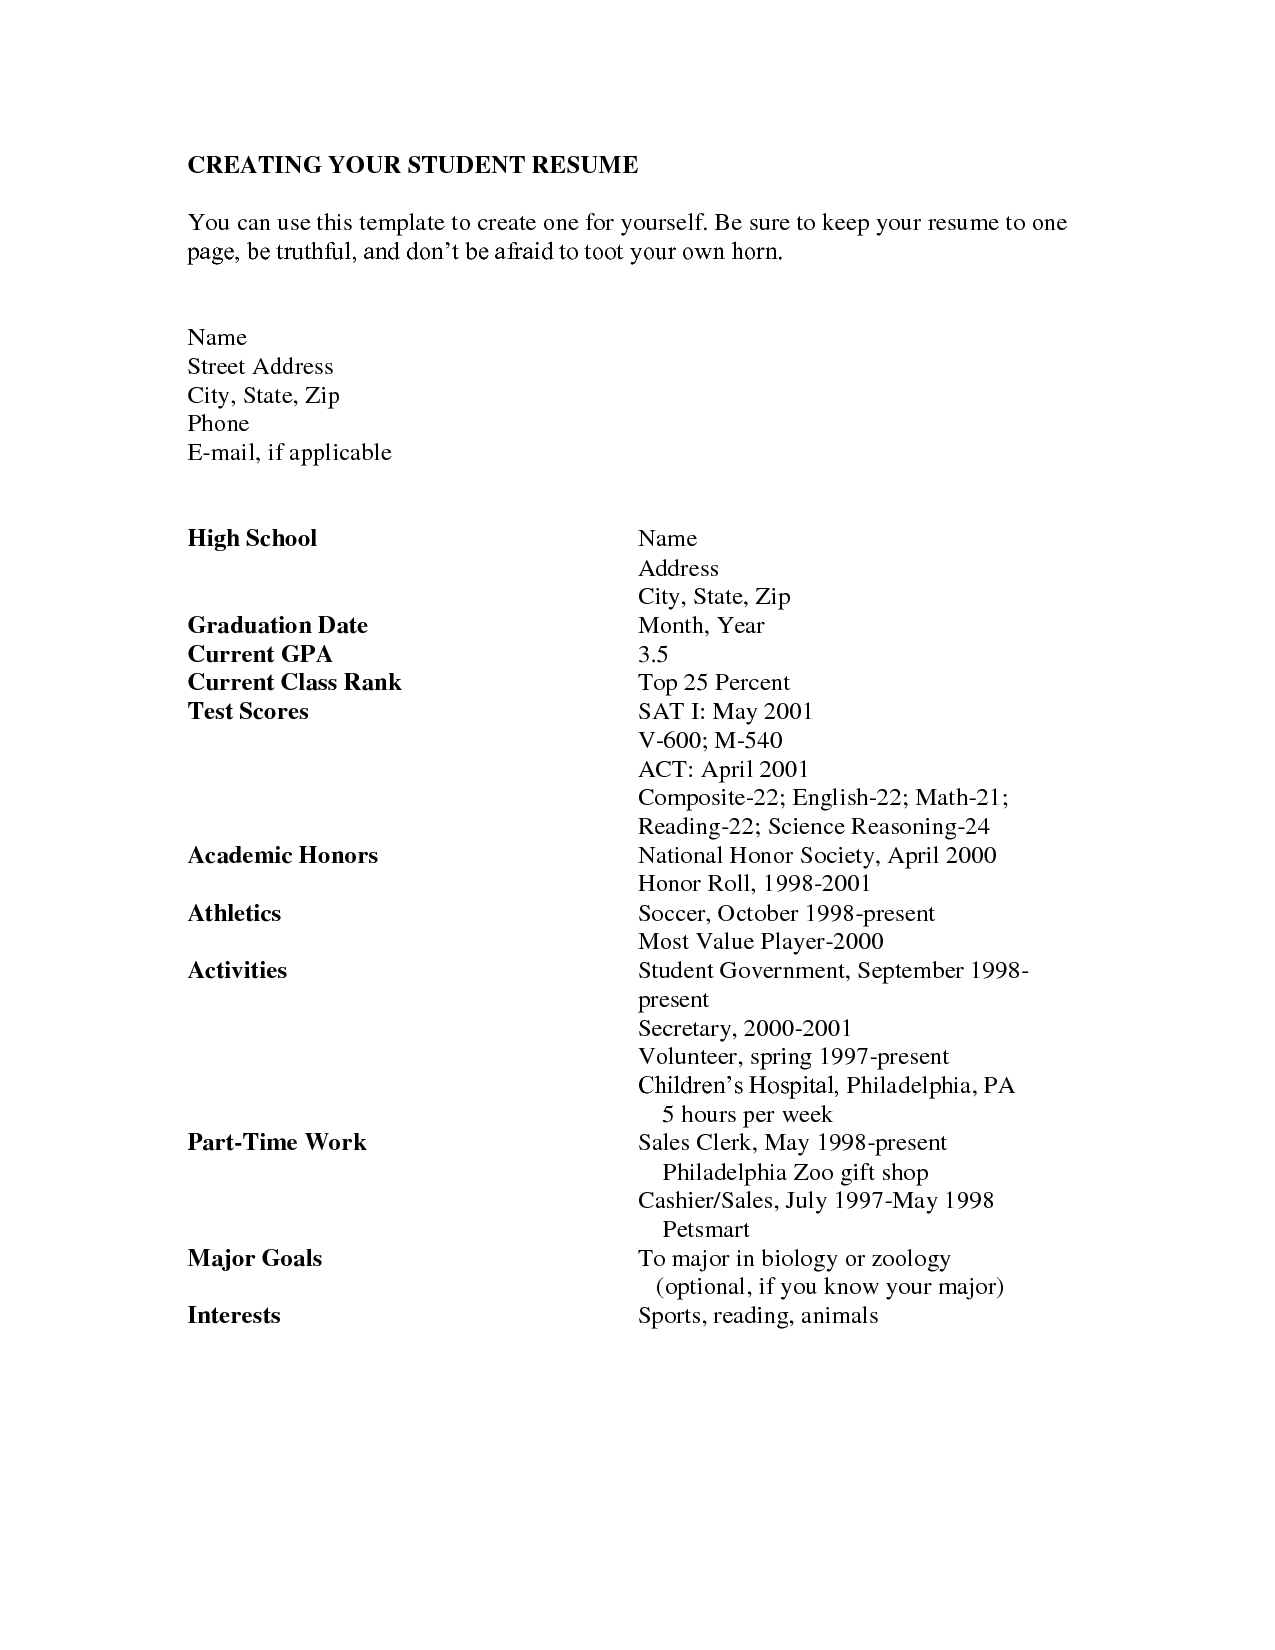 Resume Interests Examples High School Resume Academic Resume Builder Resume Templates  Http